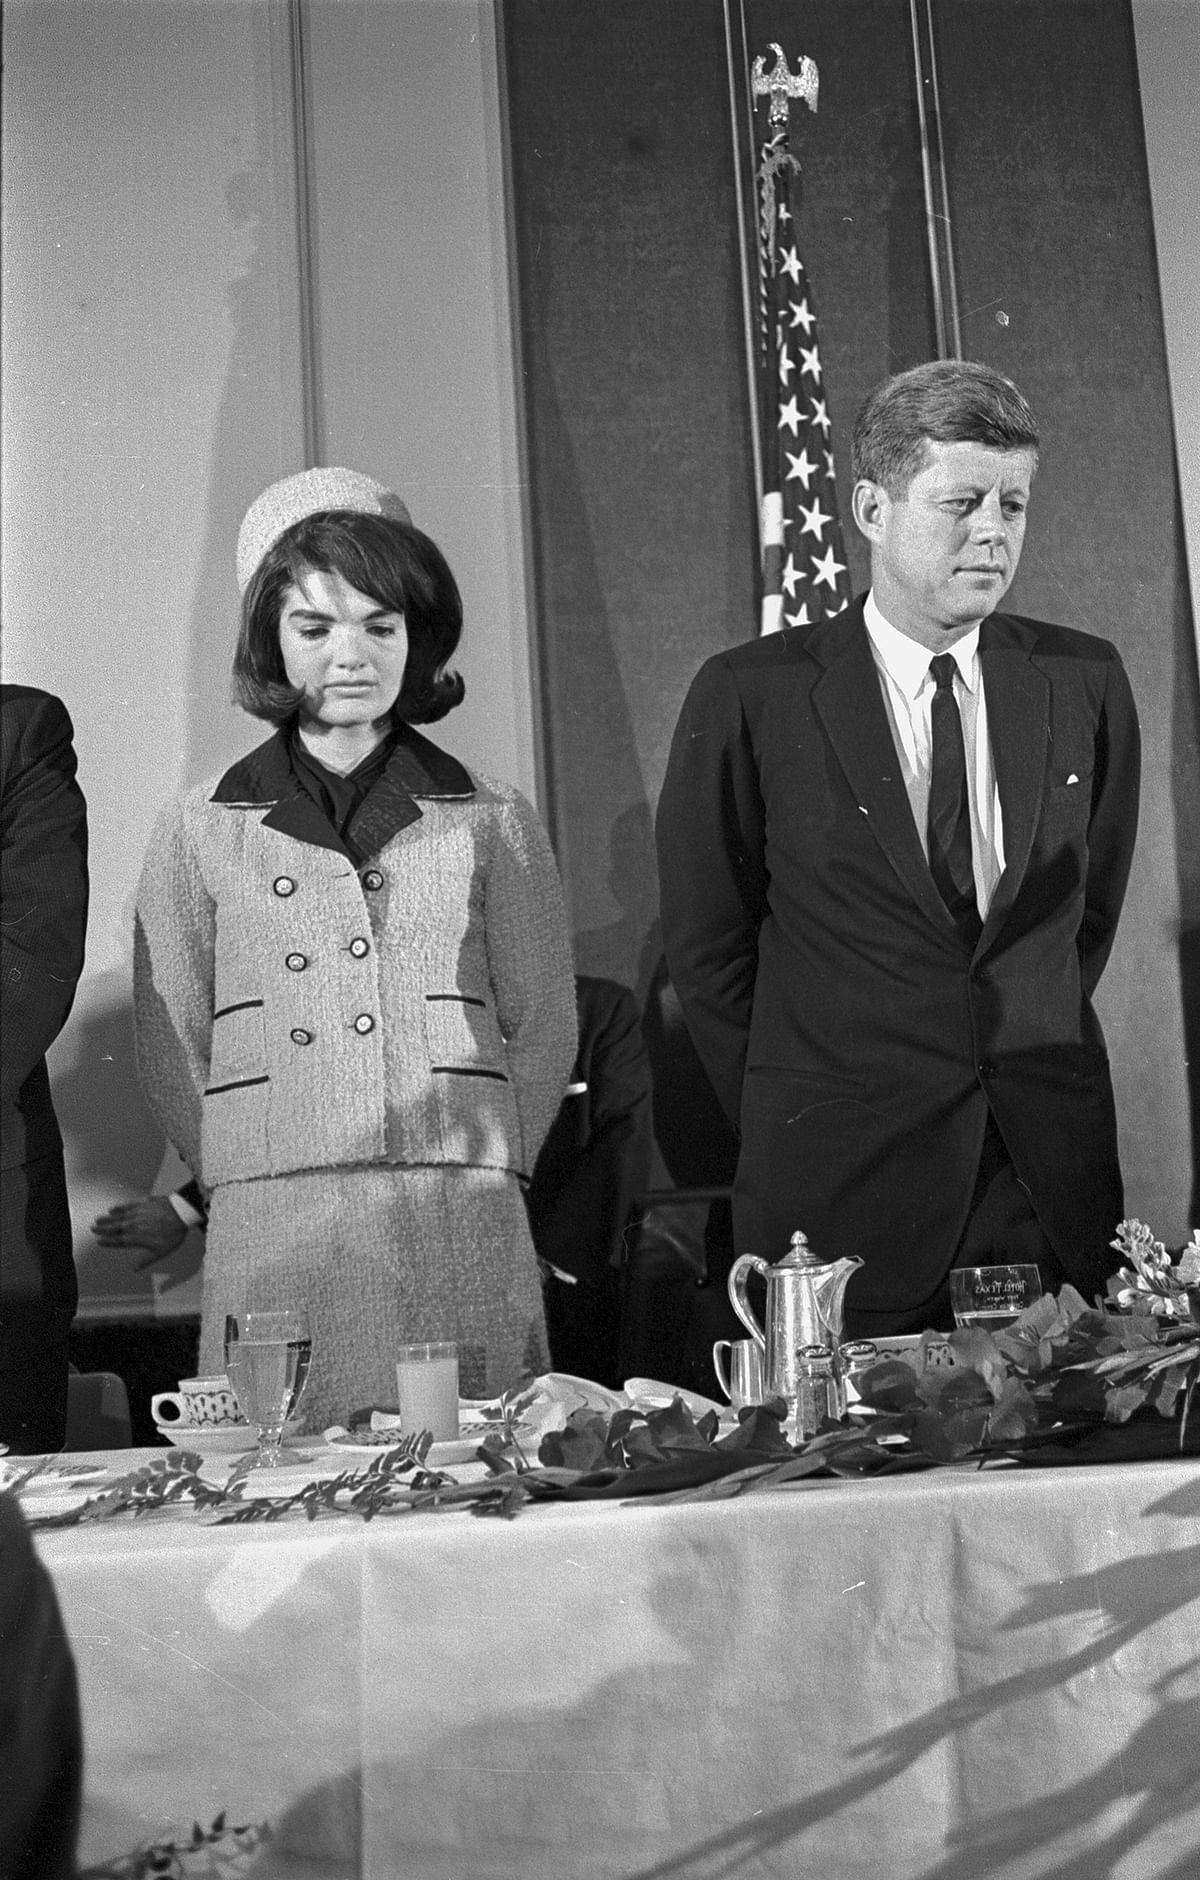 Jackie Kennedy wearing her famous pillbox hat—designed by Halston— at Fort Worth Chamber of Commerce breakfast, Hotel Texas. Photographed by Al Panzera on 22 November1963.